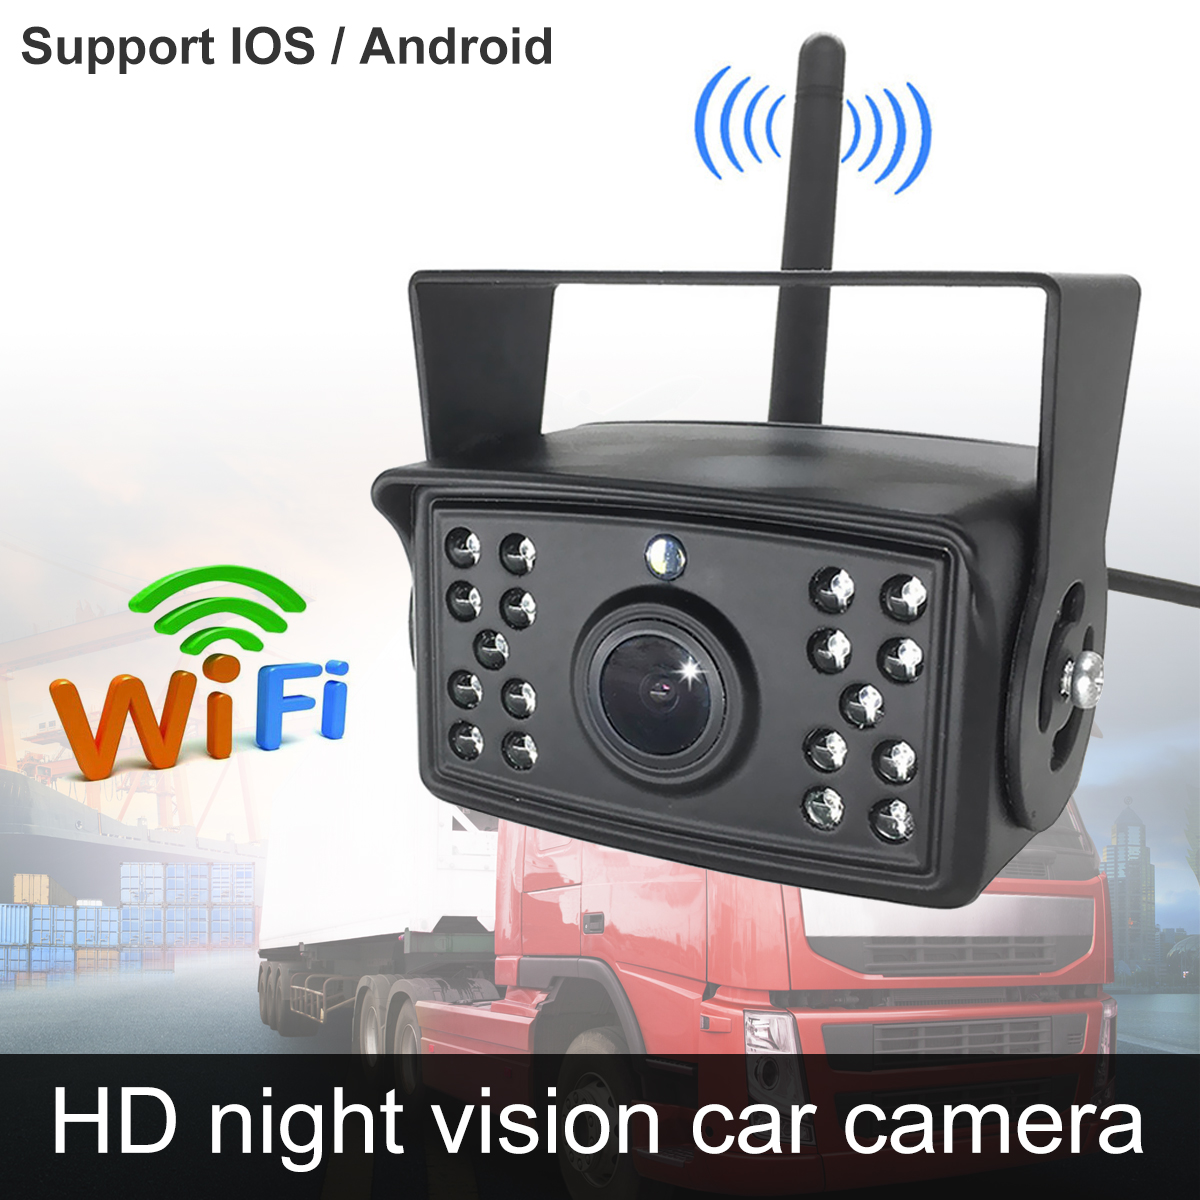 WiFi Backup Camera 1080P Full HD Wireless Rear View Camera Car Parking Assistance Night Vision with Record Function On APP Support IOS / Android